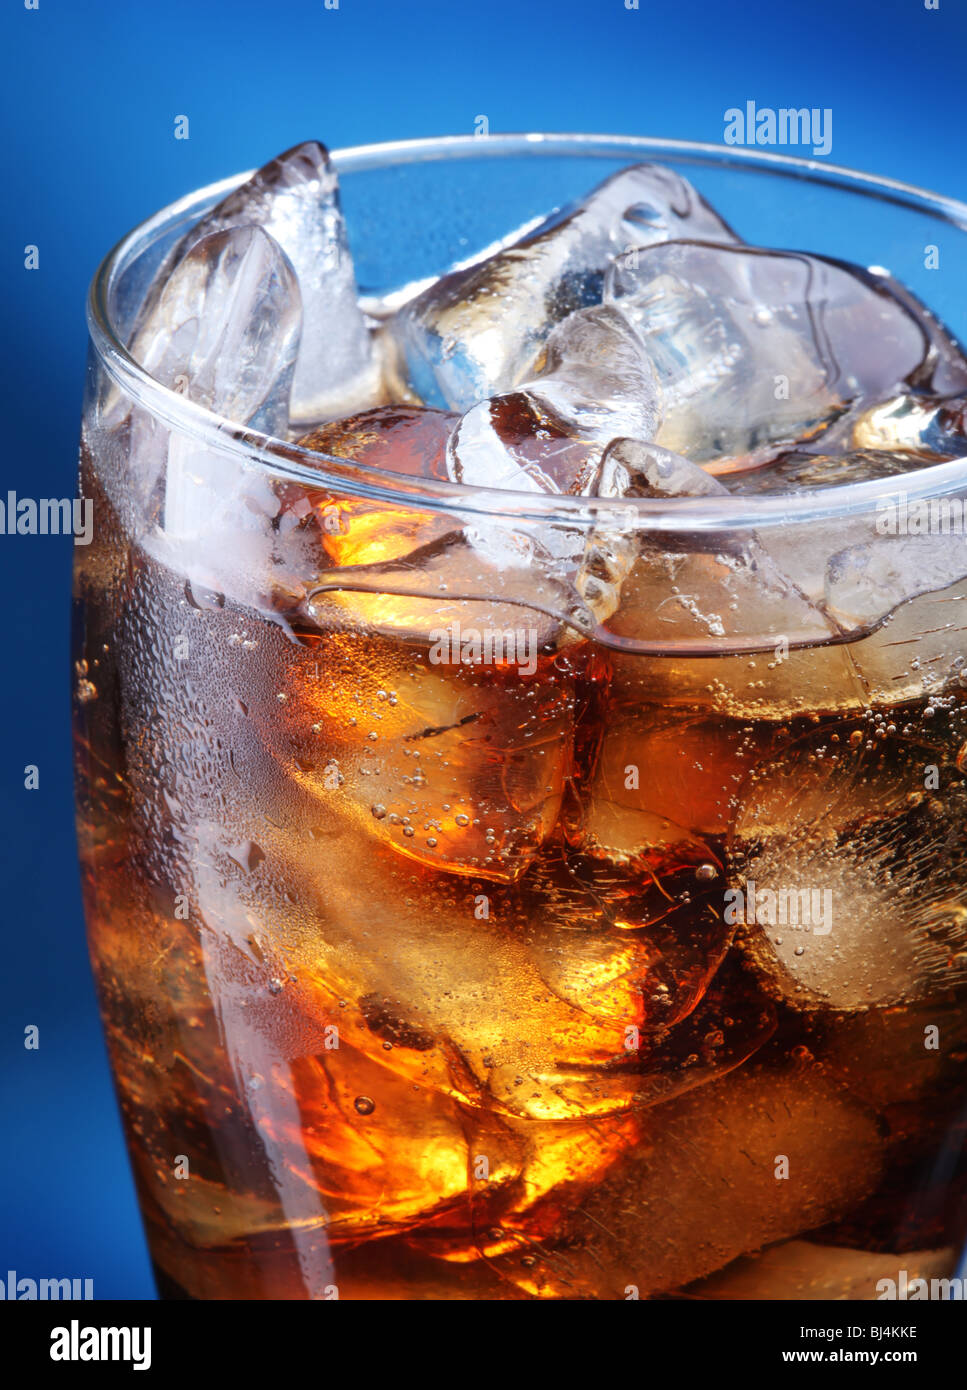 Glass of ice cola on a blue background - Stock Image